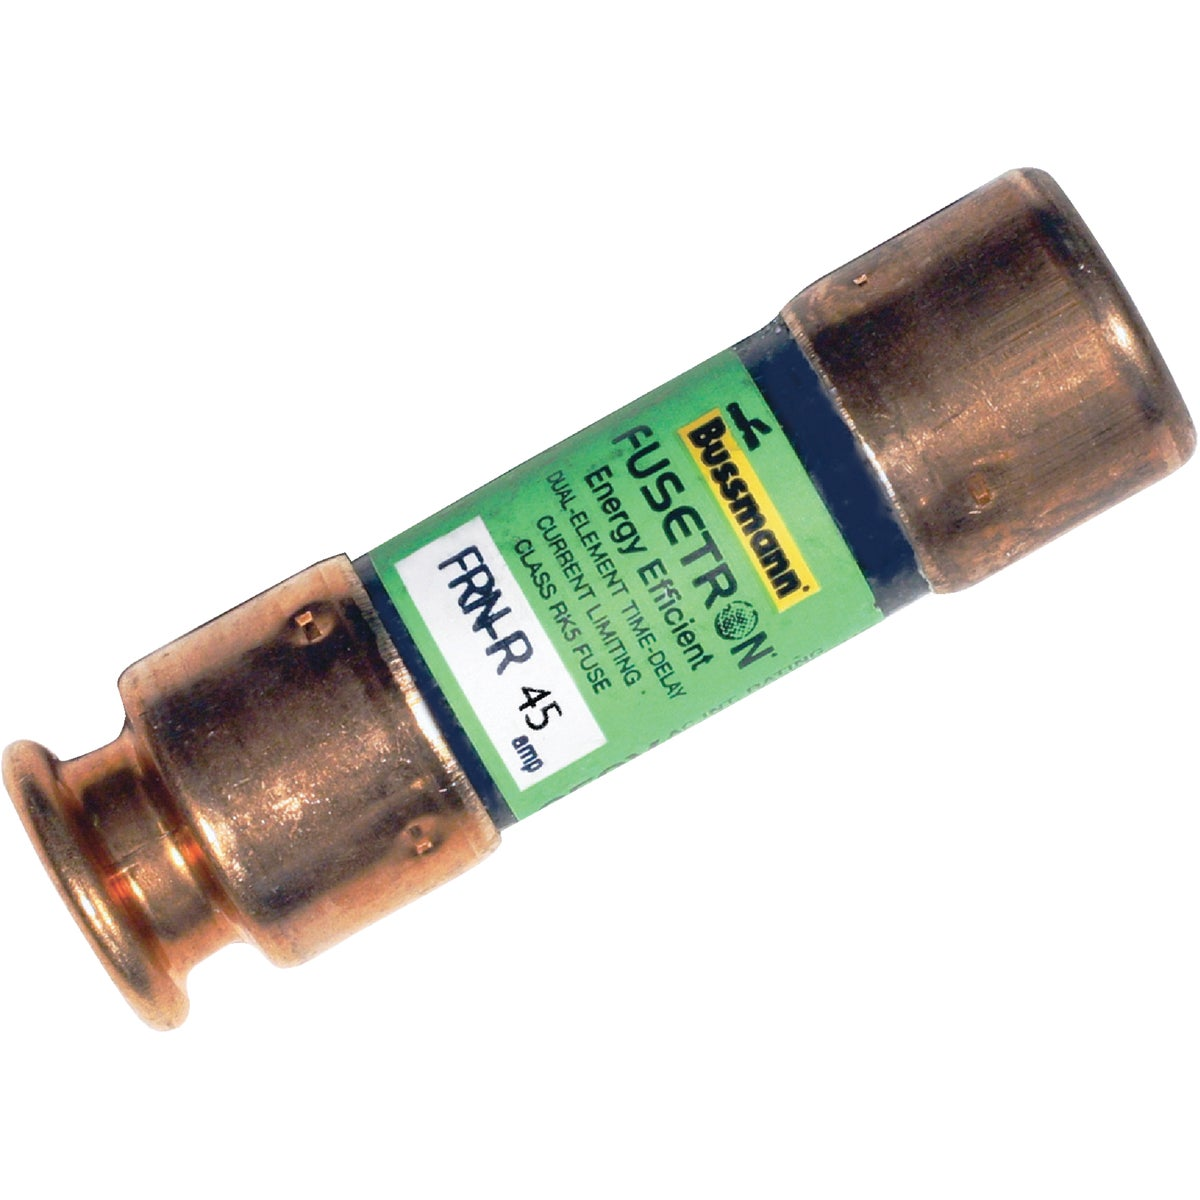 45A CARTRIDGE FUSE